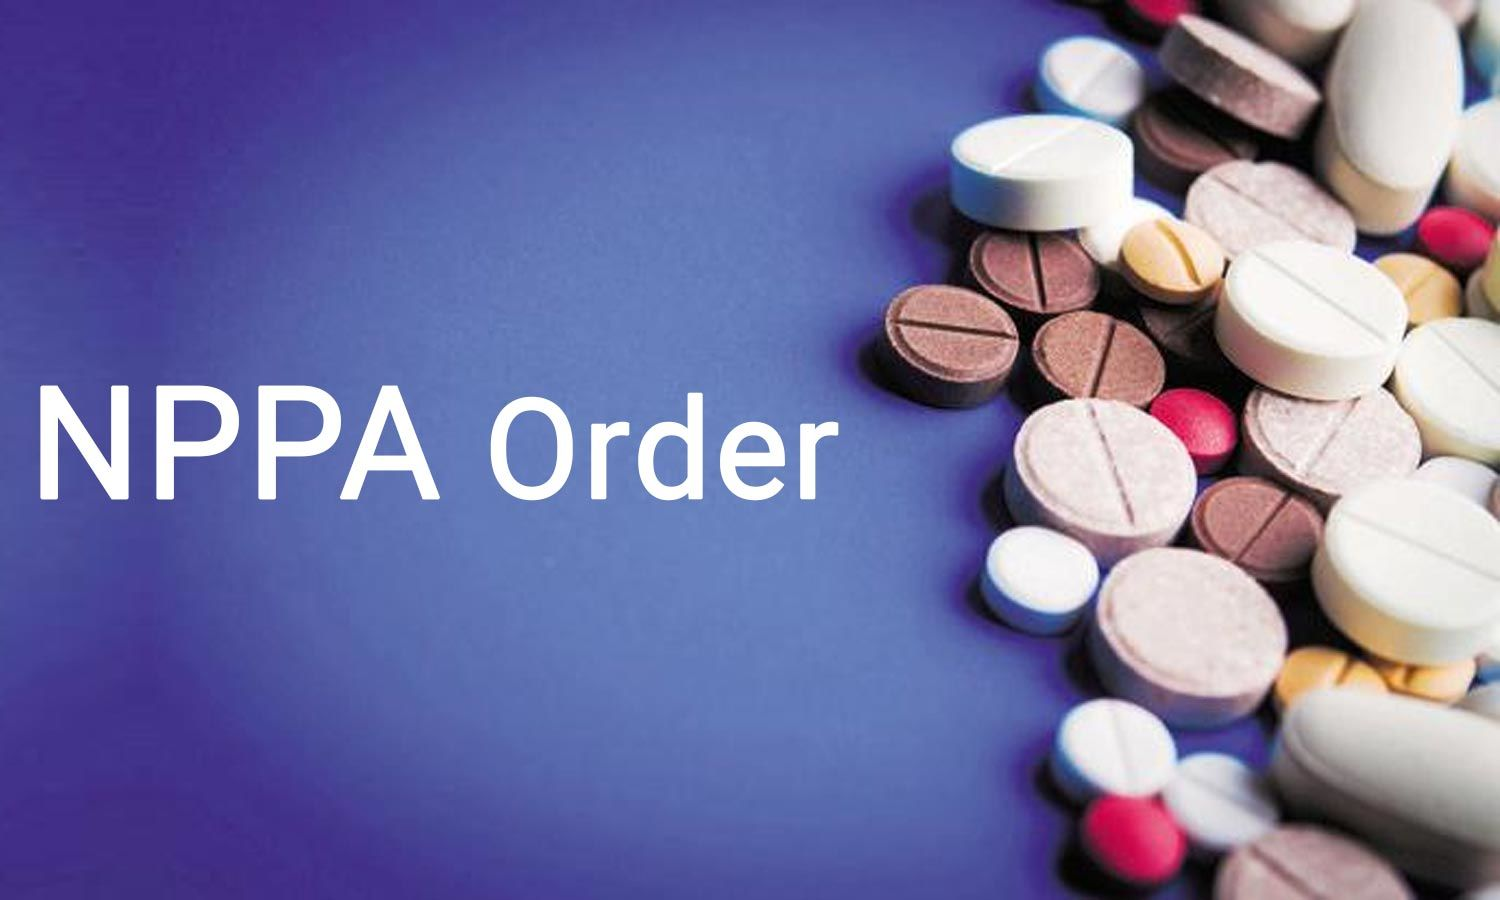 NPPA gives a deadline to manufacturers to submit availability data of 58 APIs